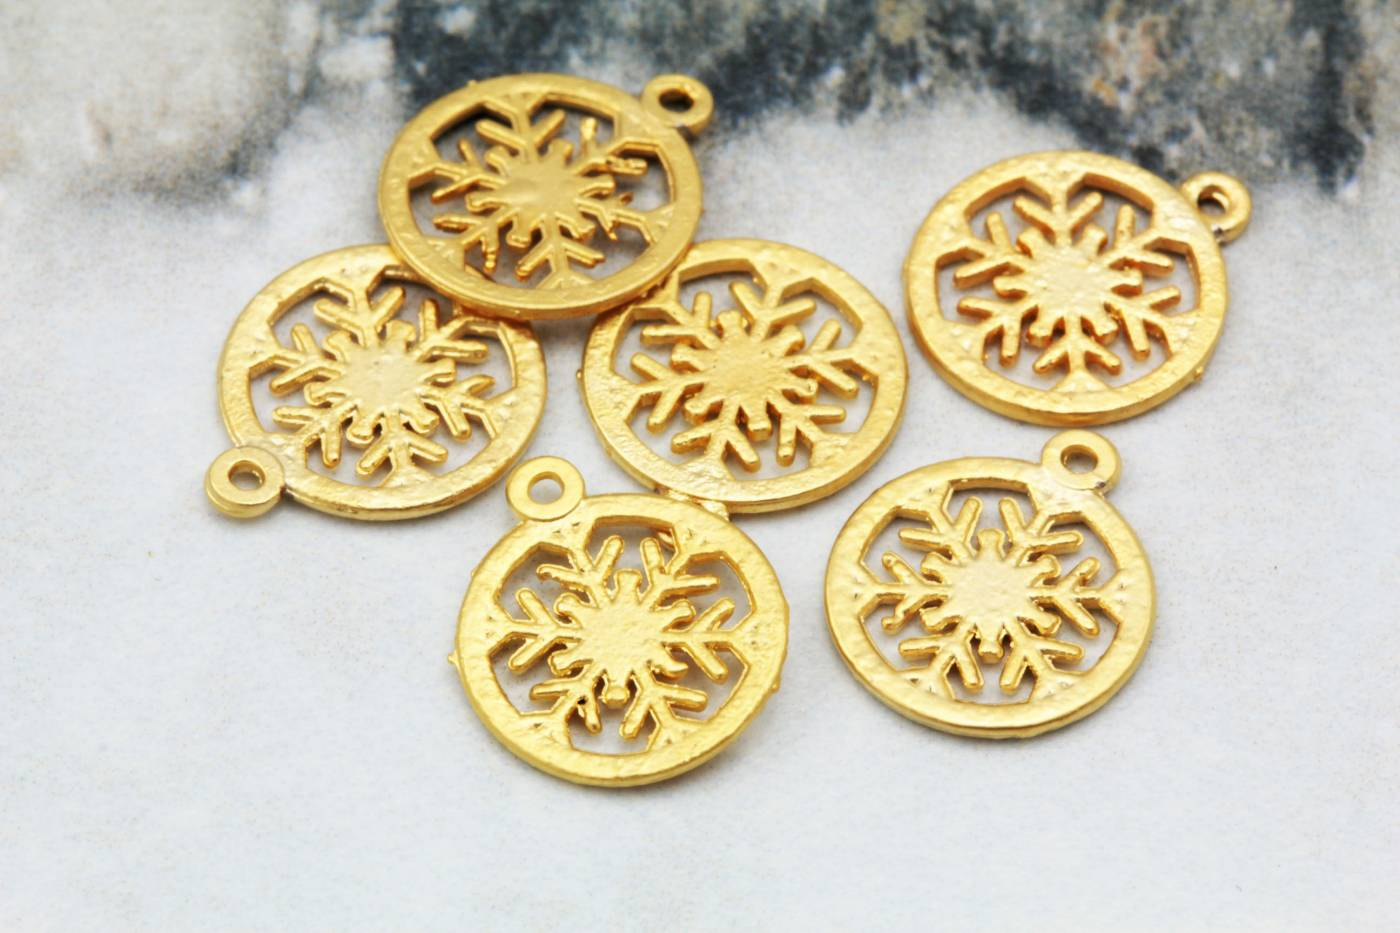 gold-plated-snowflake-jewelry-pendants.jpg